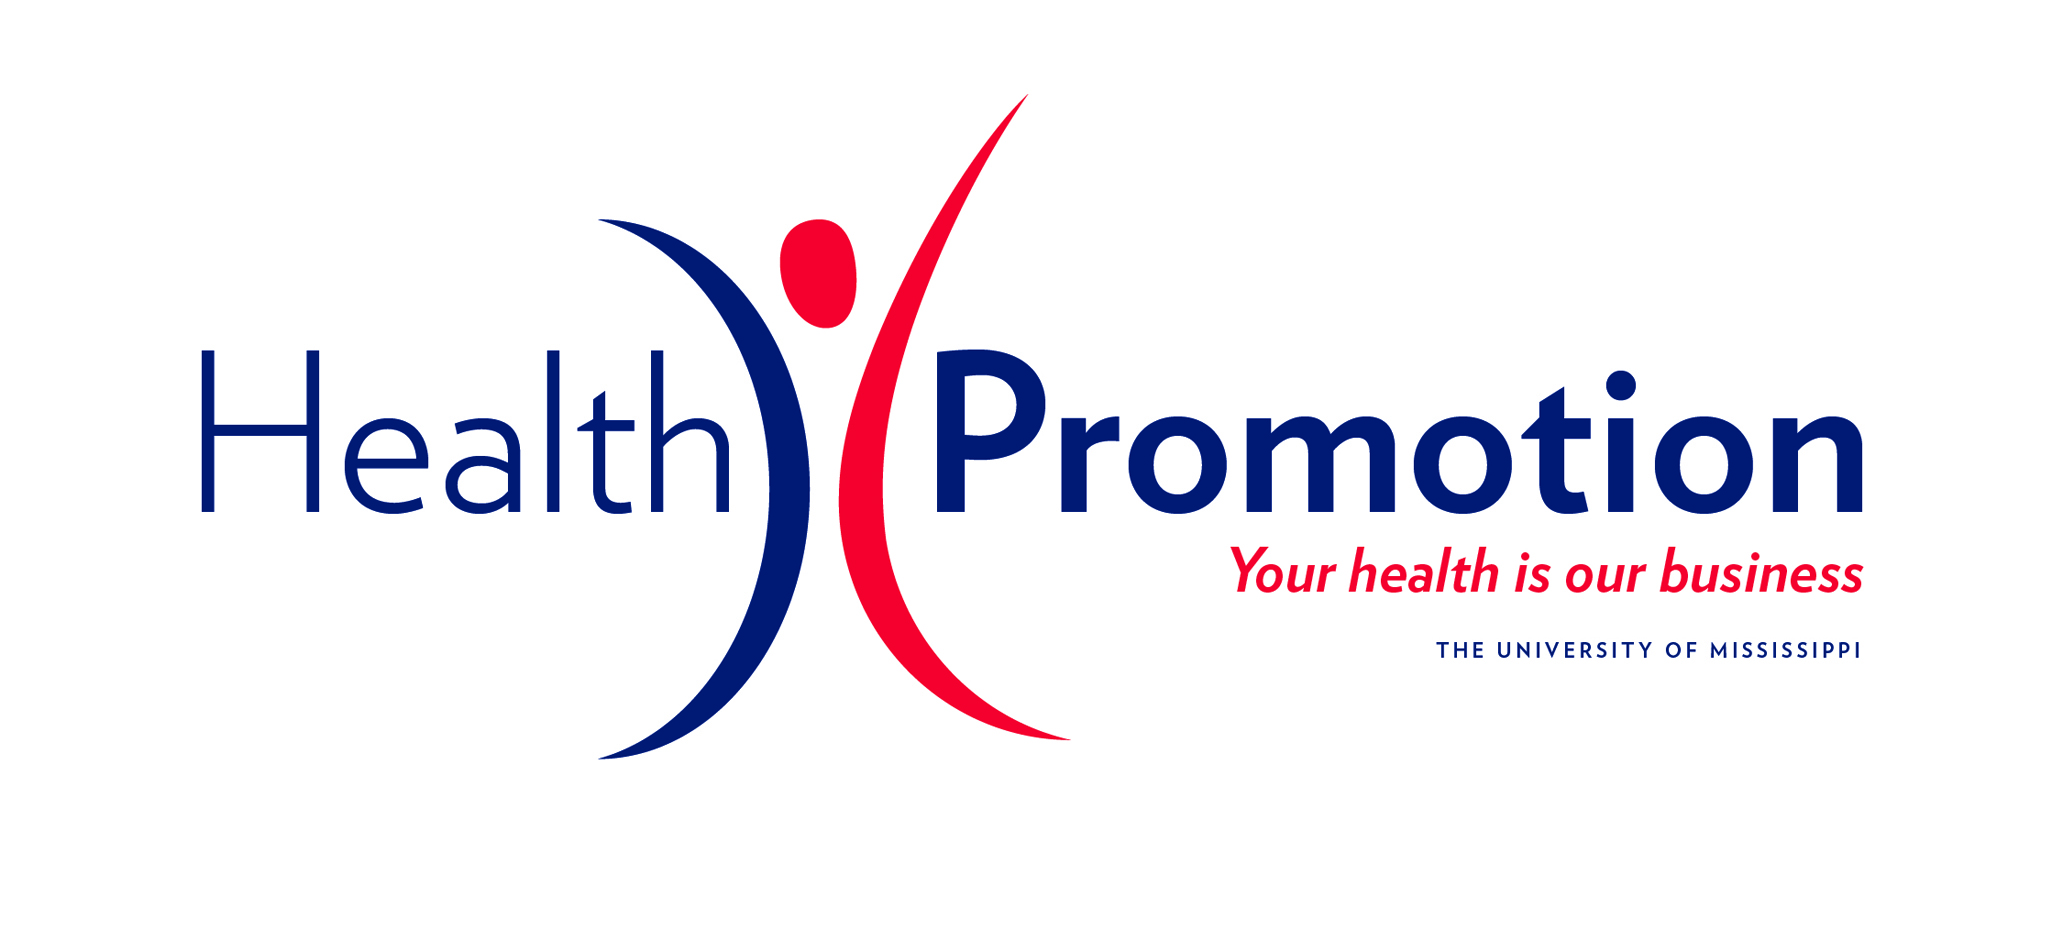 health promotion Health promotion graduates are experts in positive behavior change and healthy lifestyles most go on to promote health and wellness programs in community, corporate, clinical, non-profit and educational settings.